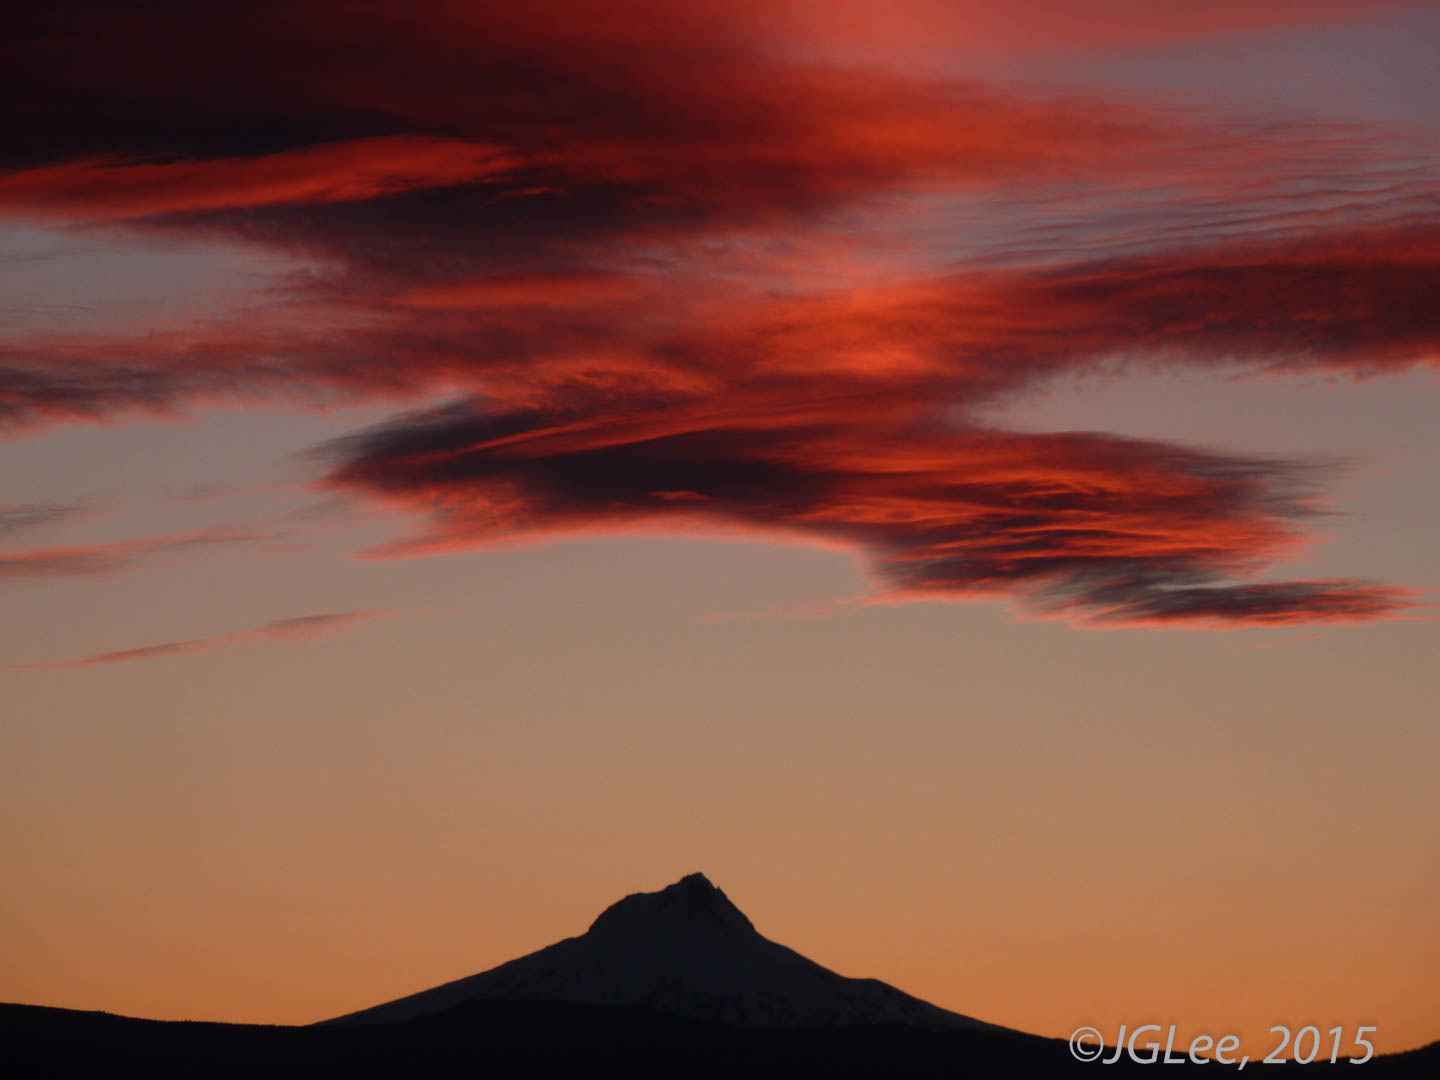 Bruning Sky, Silhouette of Mt. Hood